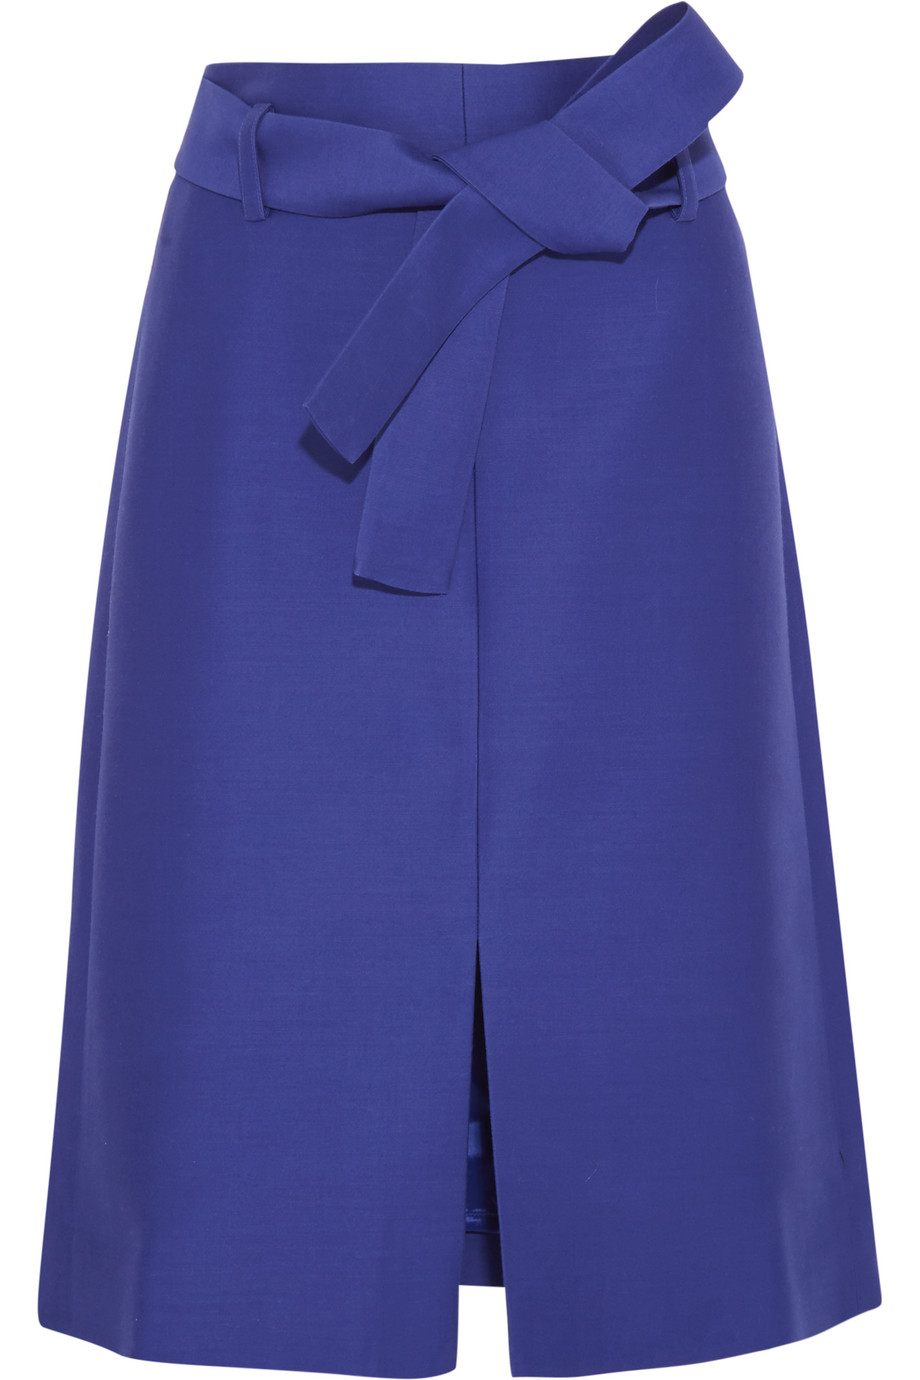 J.Crew Collection Wool and Silk-Blend Faille Skirt, Royal Blue, Women's, Size: 6